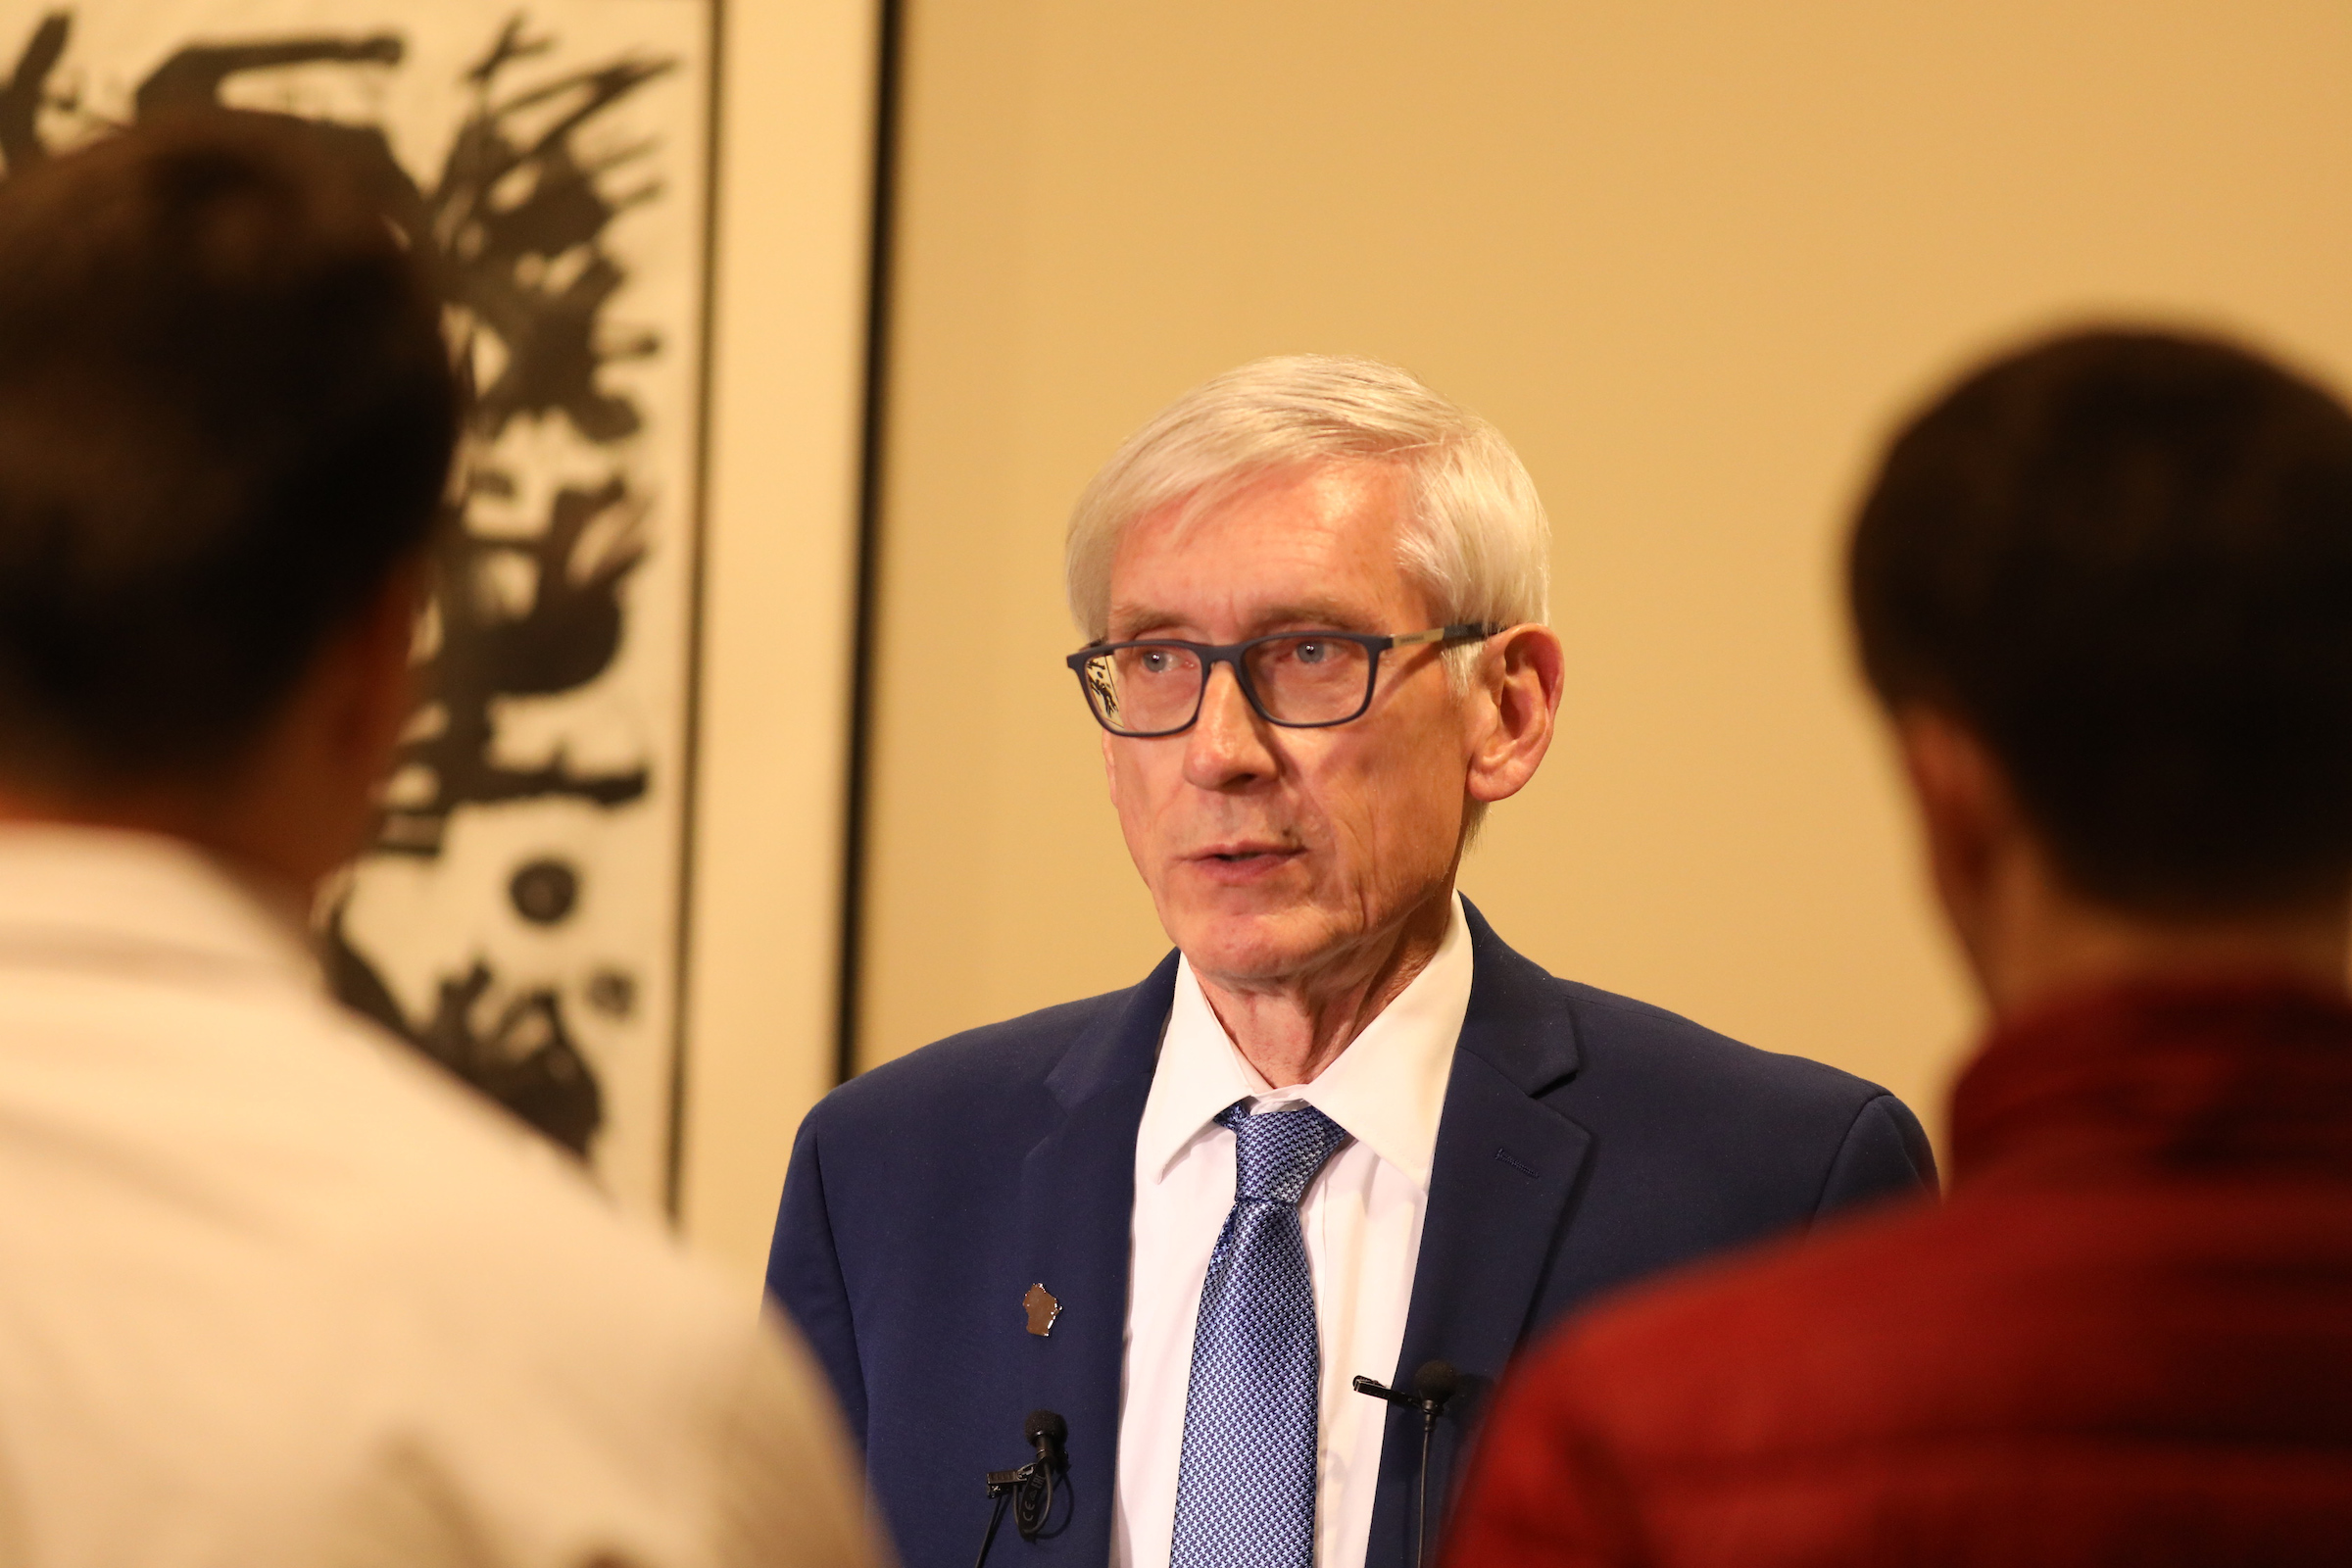 Photo of Regent and Governor-elect Tony Evers taken at UW System Board of Regents meeting hosted by UW-La Crosse in December 2018